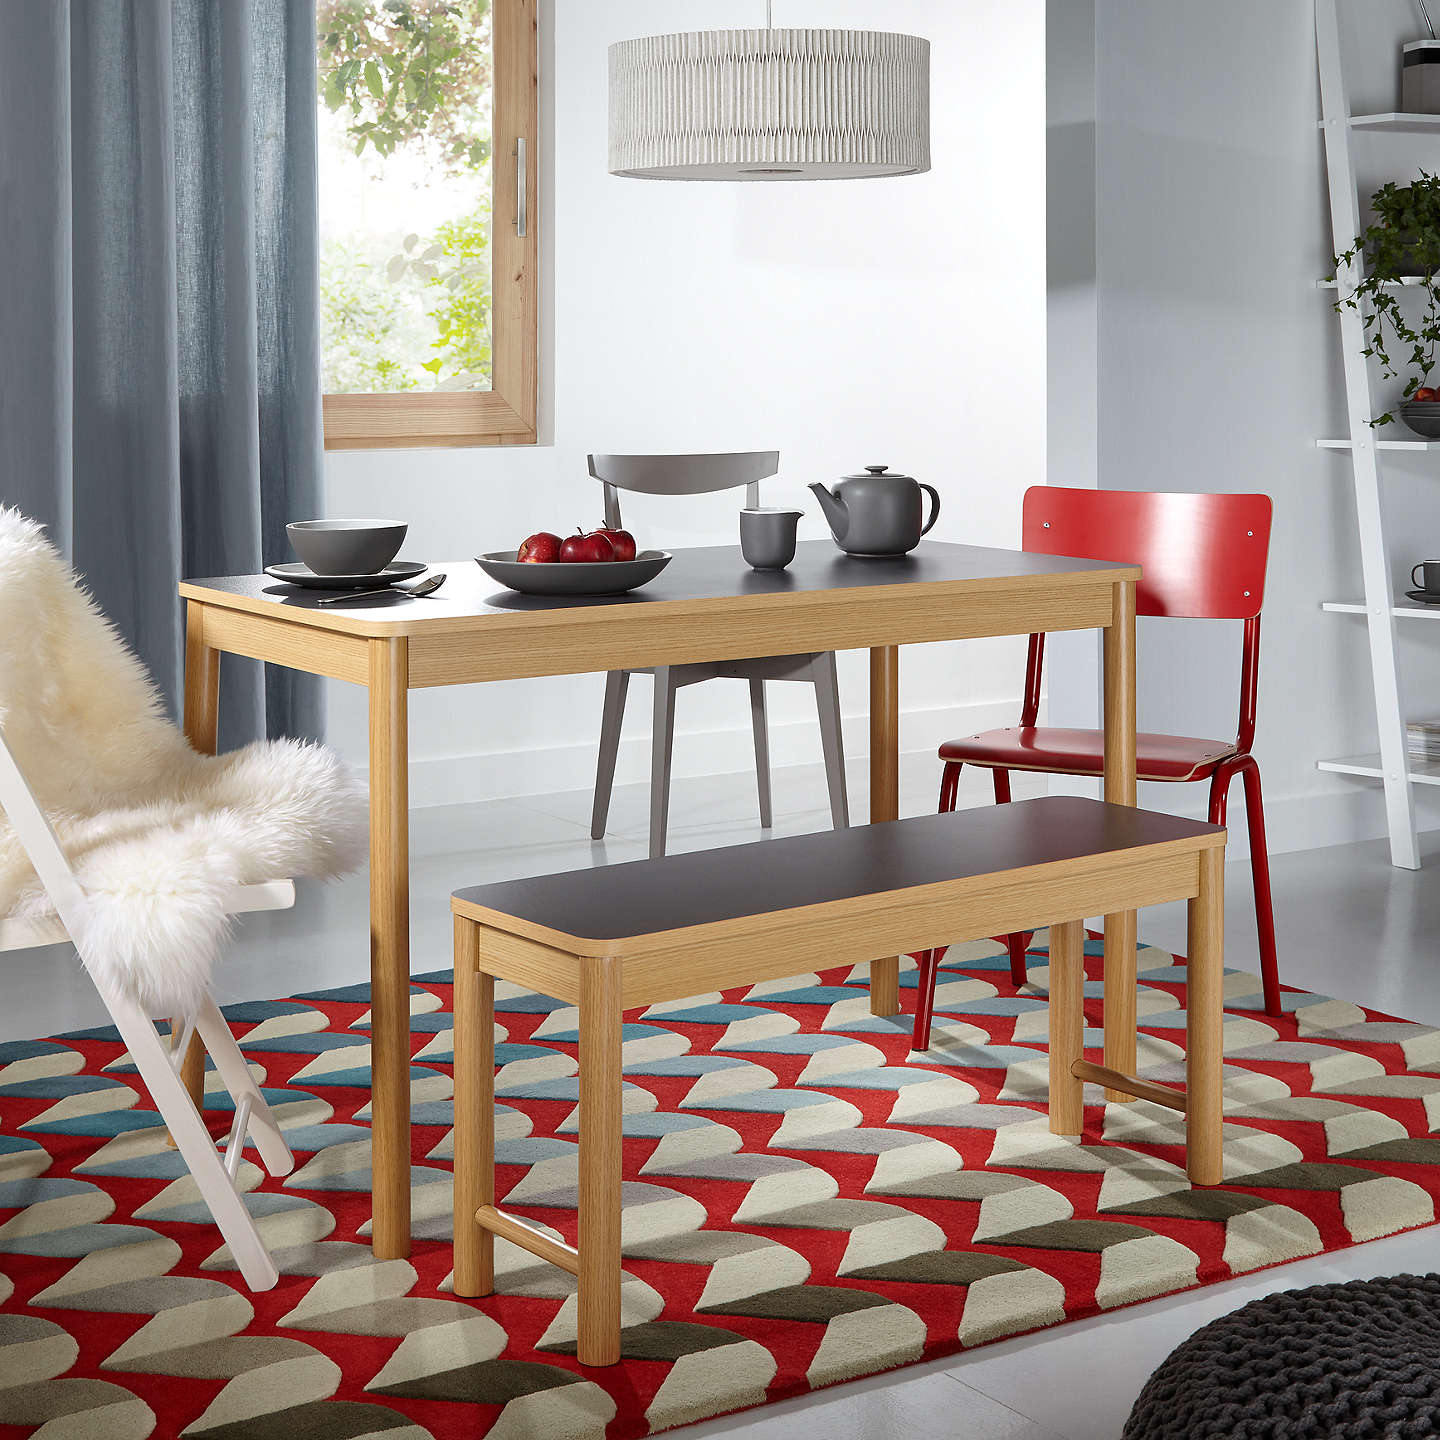 BuyJohn Lewis Peyton 4 Seater Kitchen Dining Table Online At Johnlewis